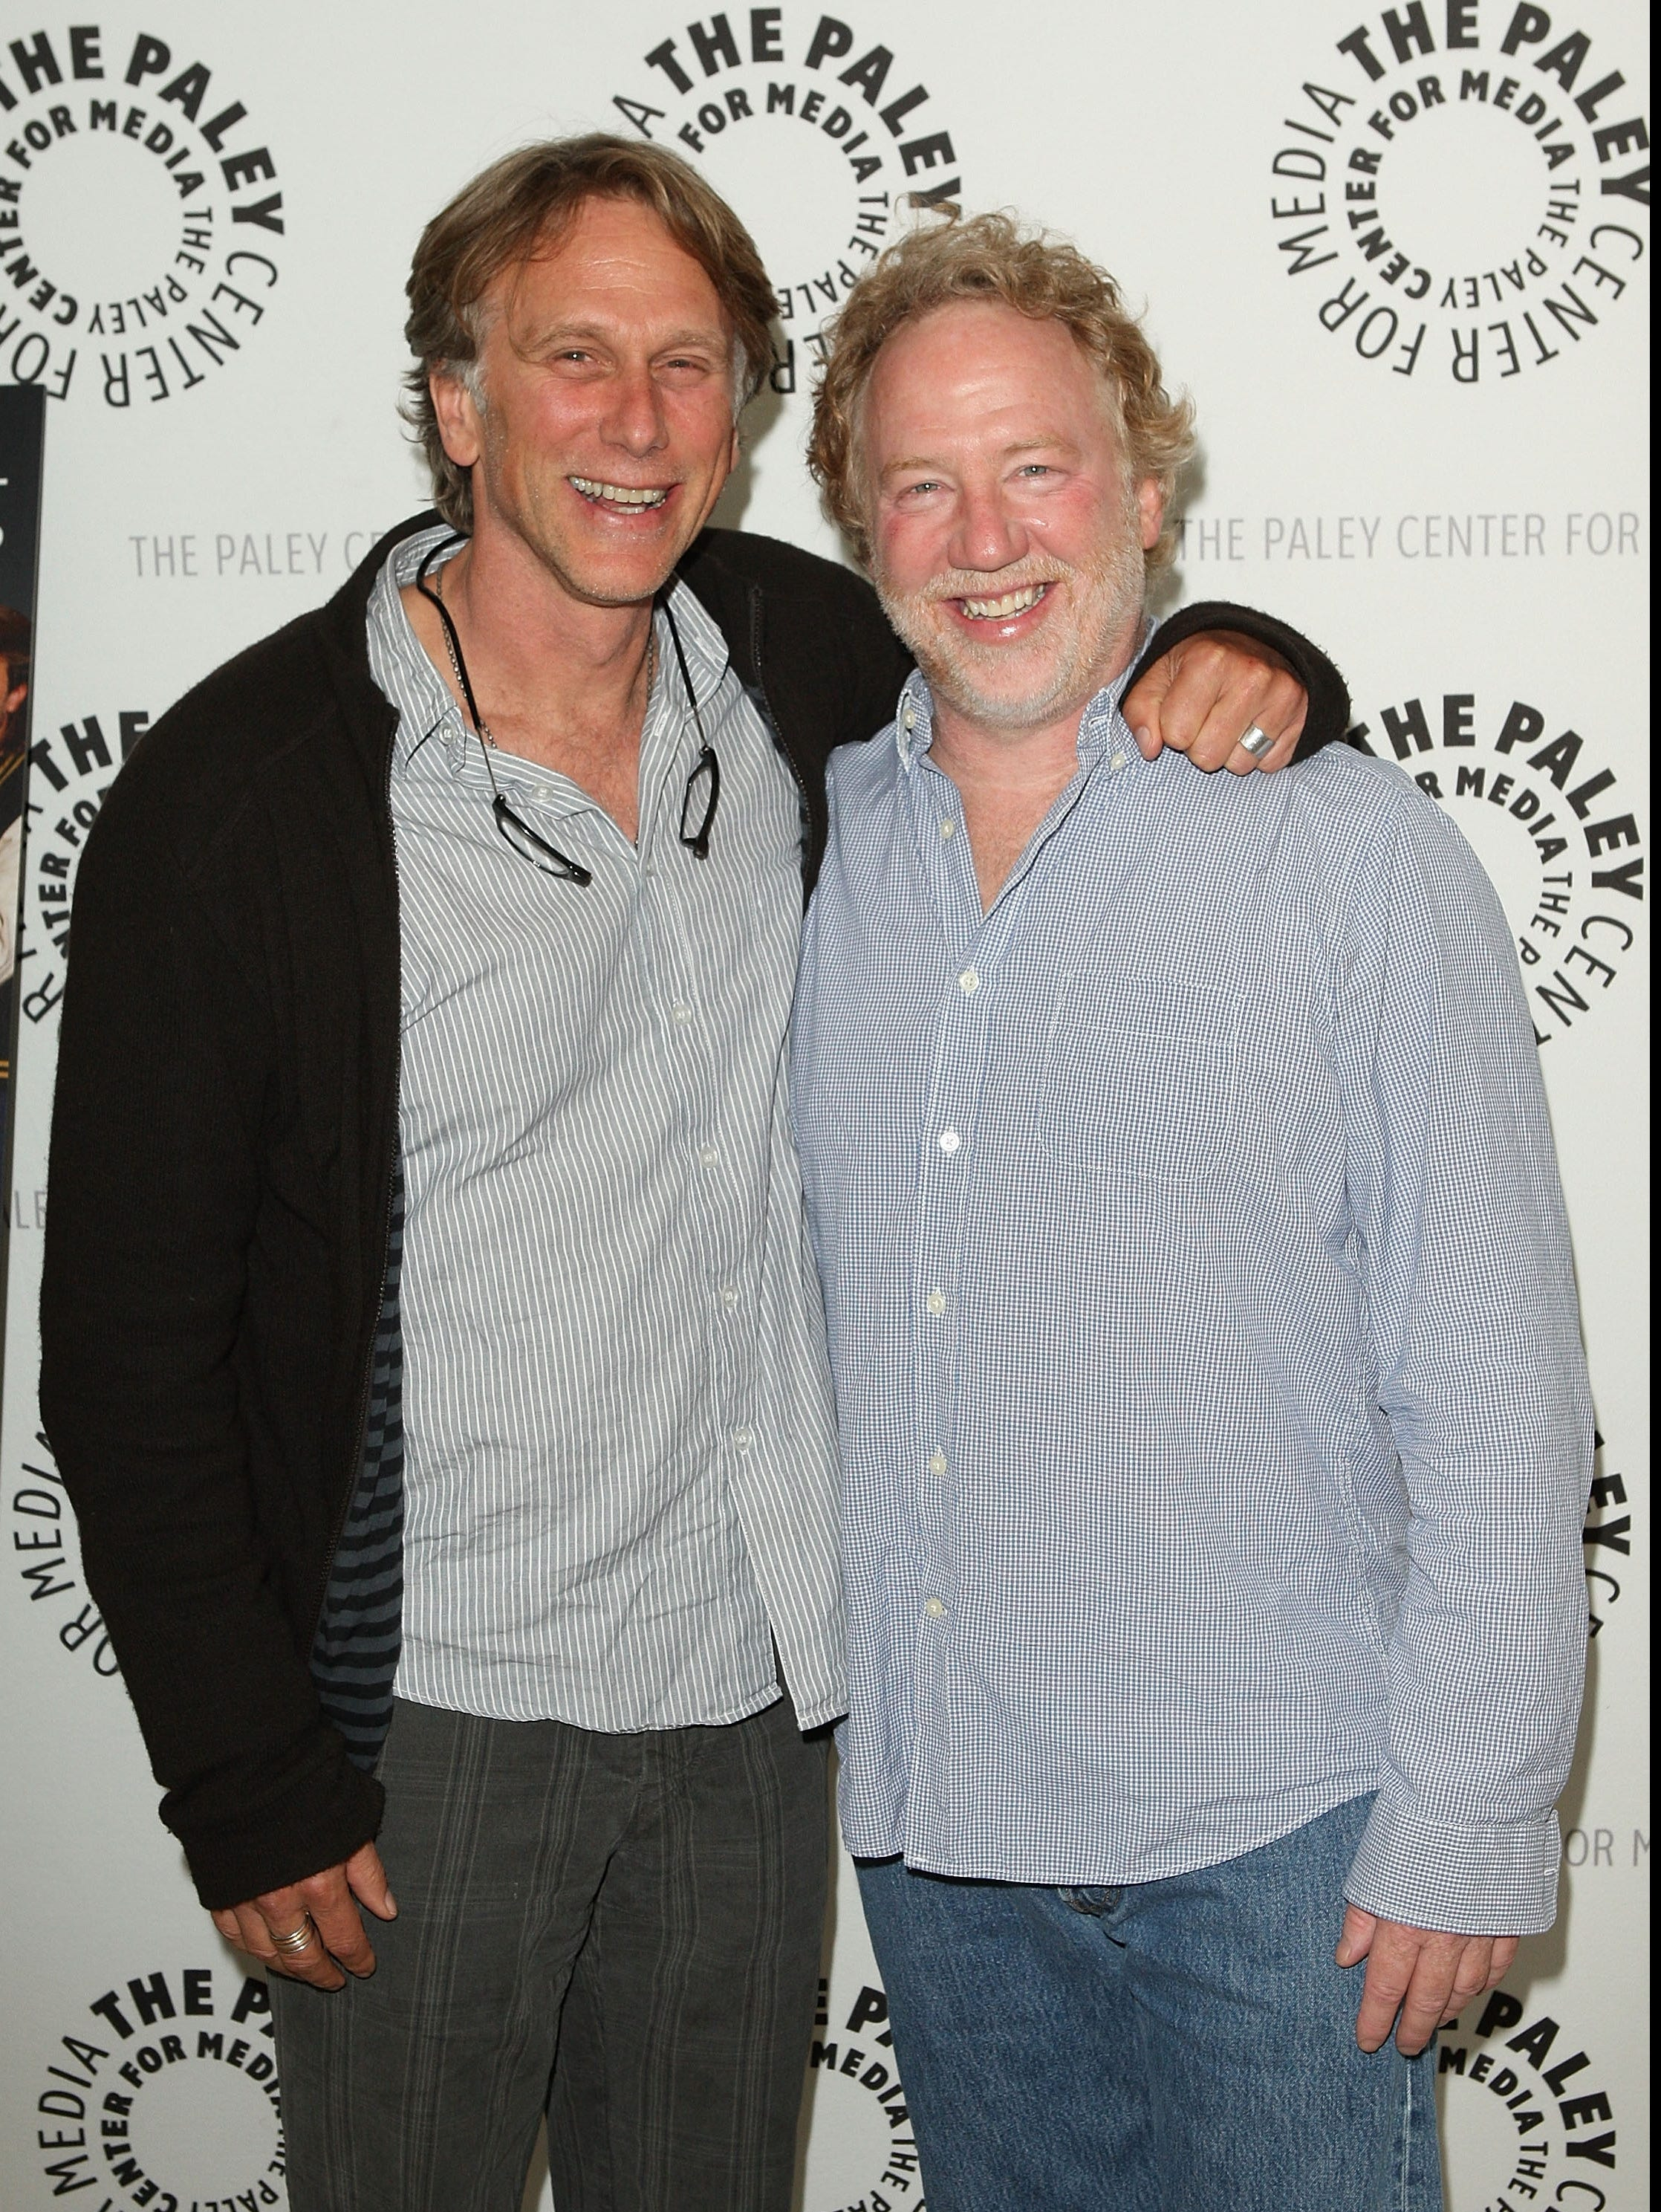 timothy busfield stripestimothy busfield this is us, timothy busfield imdb, timothy busfield movies, timothy busfield net worth, timothy busfield wheelchair, timothy busfield and melissa gilbert, timothy busfield wife, timothy busfield field of dreams, timothy busfield young, timothy busfield height, timothy busfield age, timothy busfield twitter, timothy busfield first kid, timothy busfield msu, timothy busfield baseball, timothy busfield stripes, timothy busfield revenge of the nerds, timothy busfield photo, timothy busfield director, timothy busfield 2016